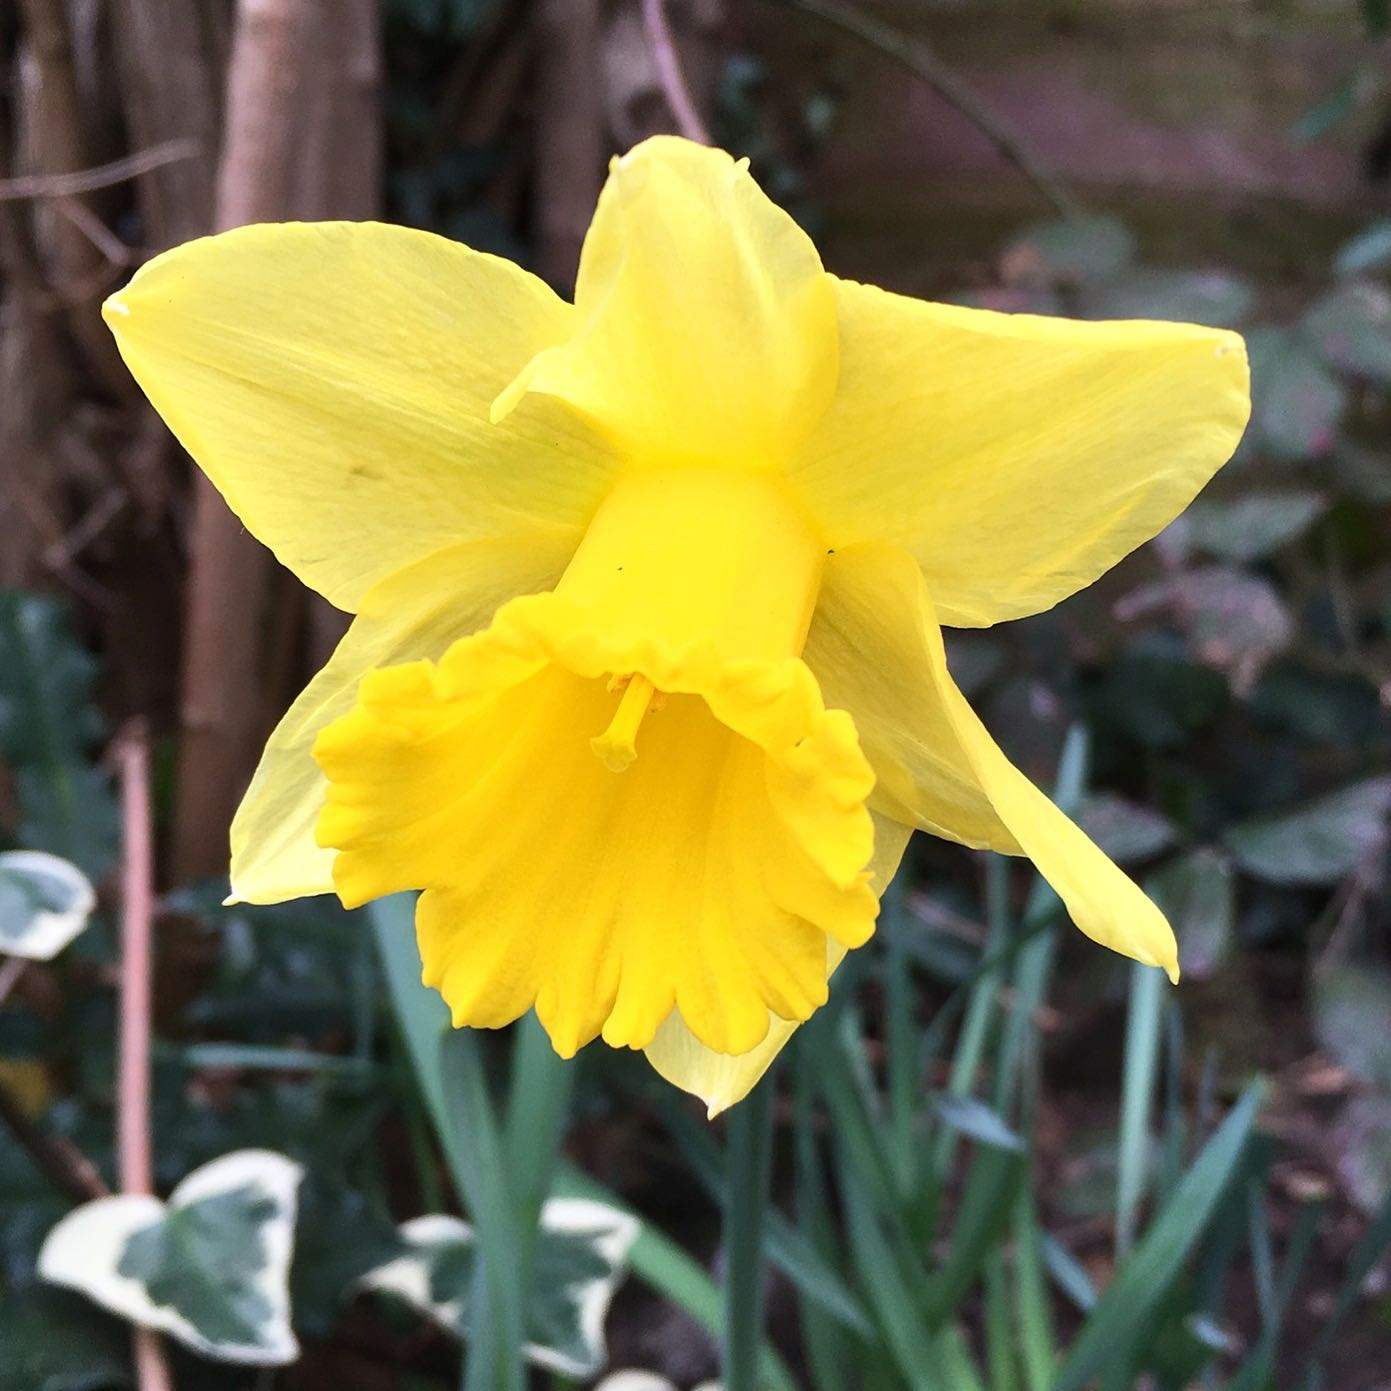 I have one daffodil in my garden so far, just one